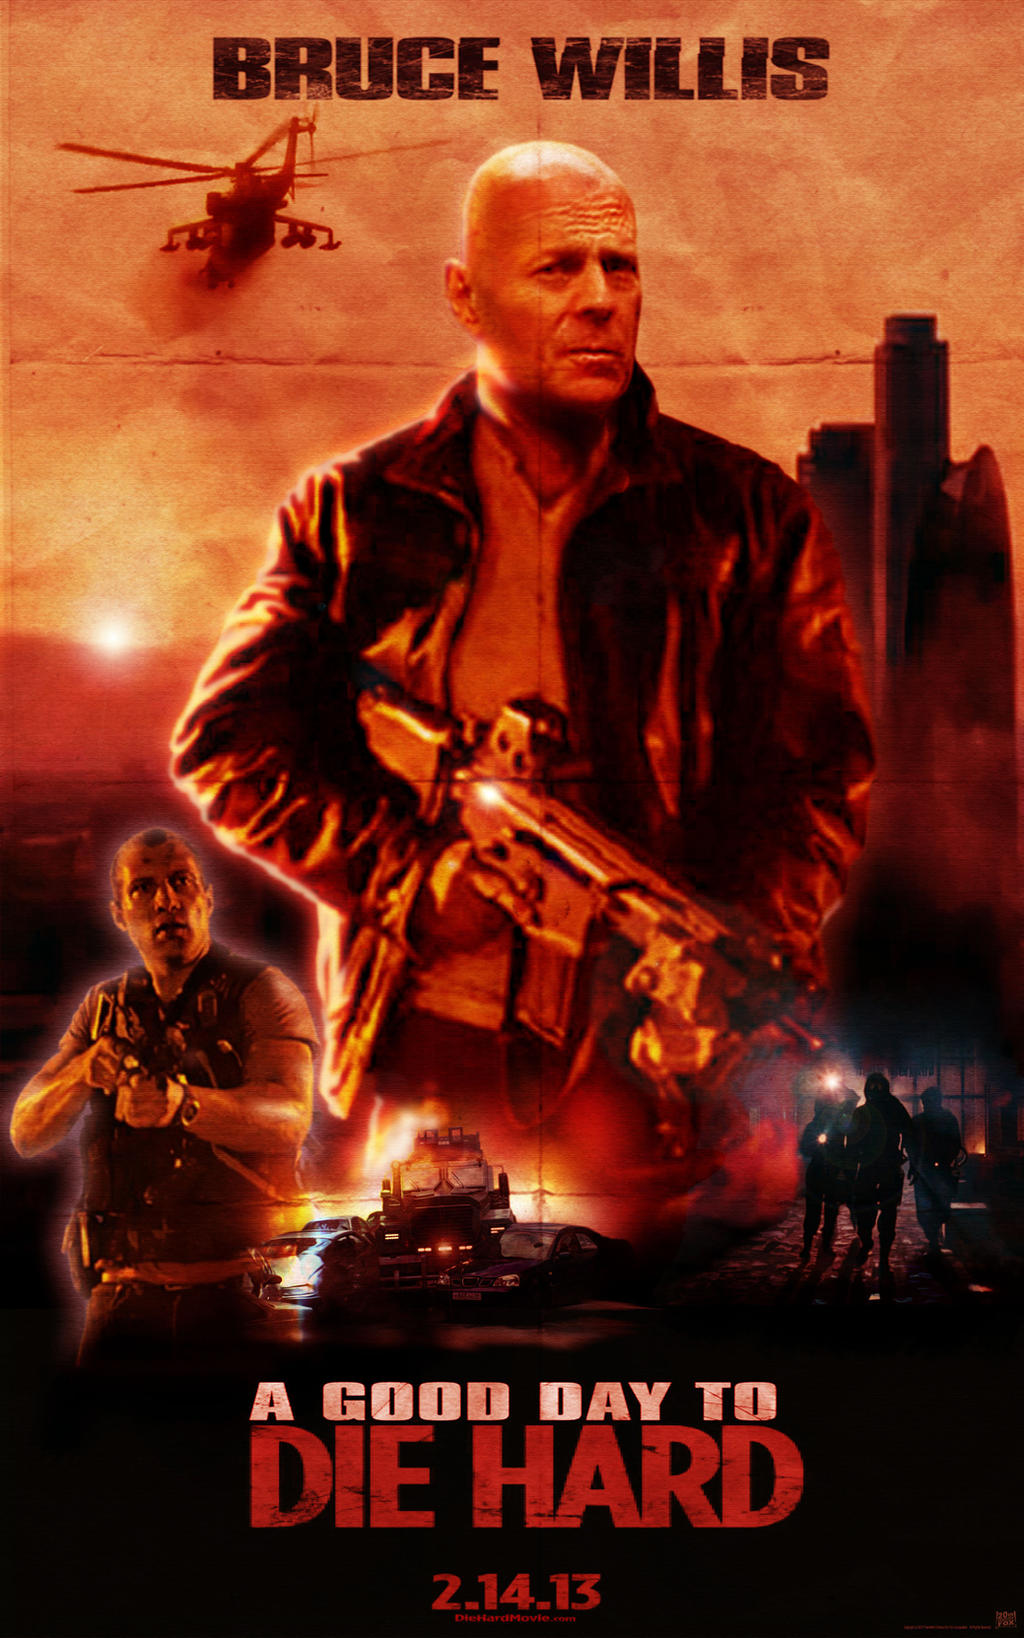 ... good day to die hard 2013 film here you can watch a good day to die